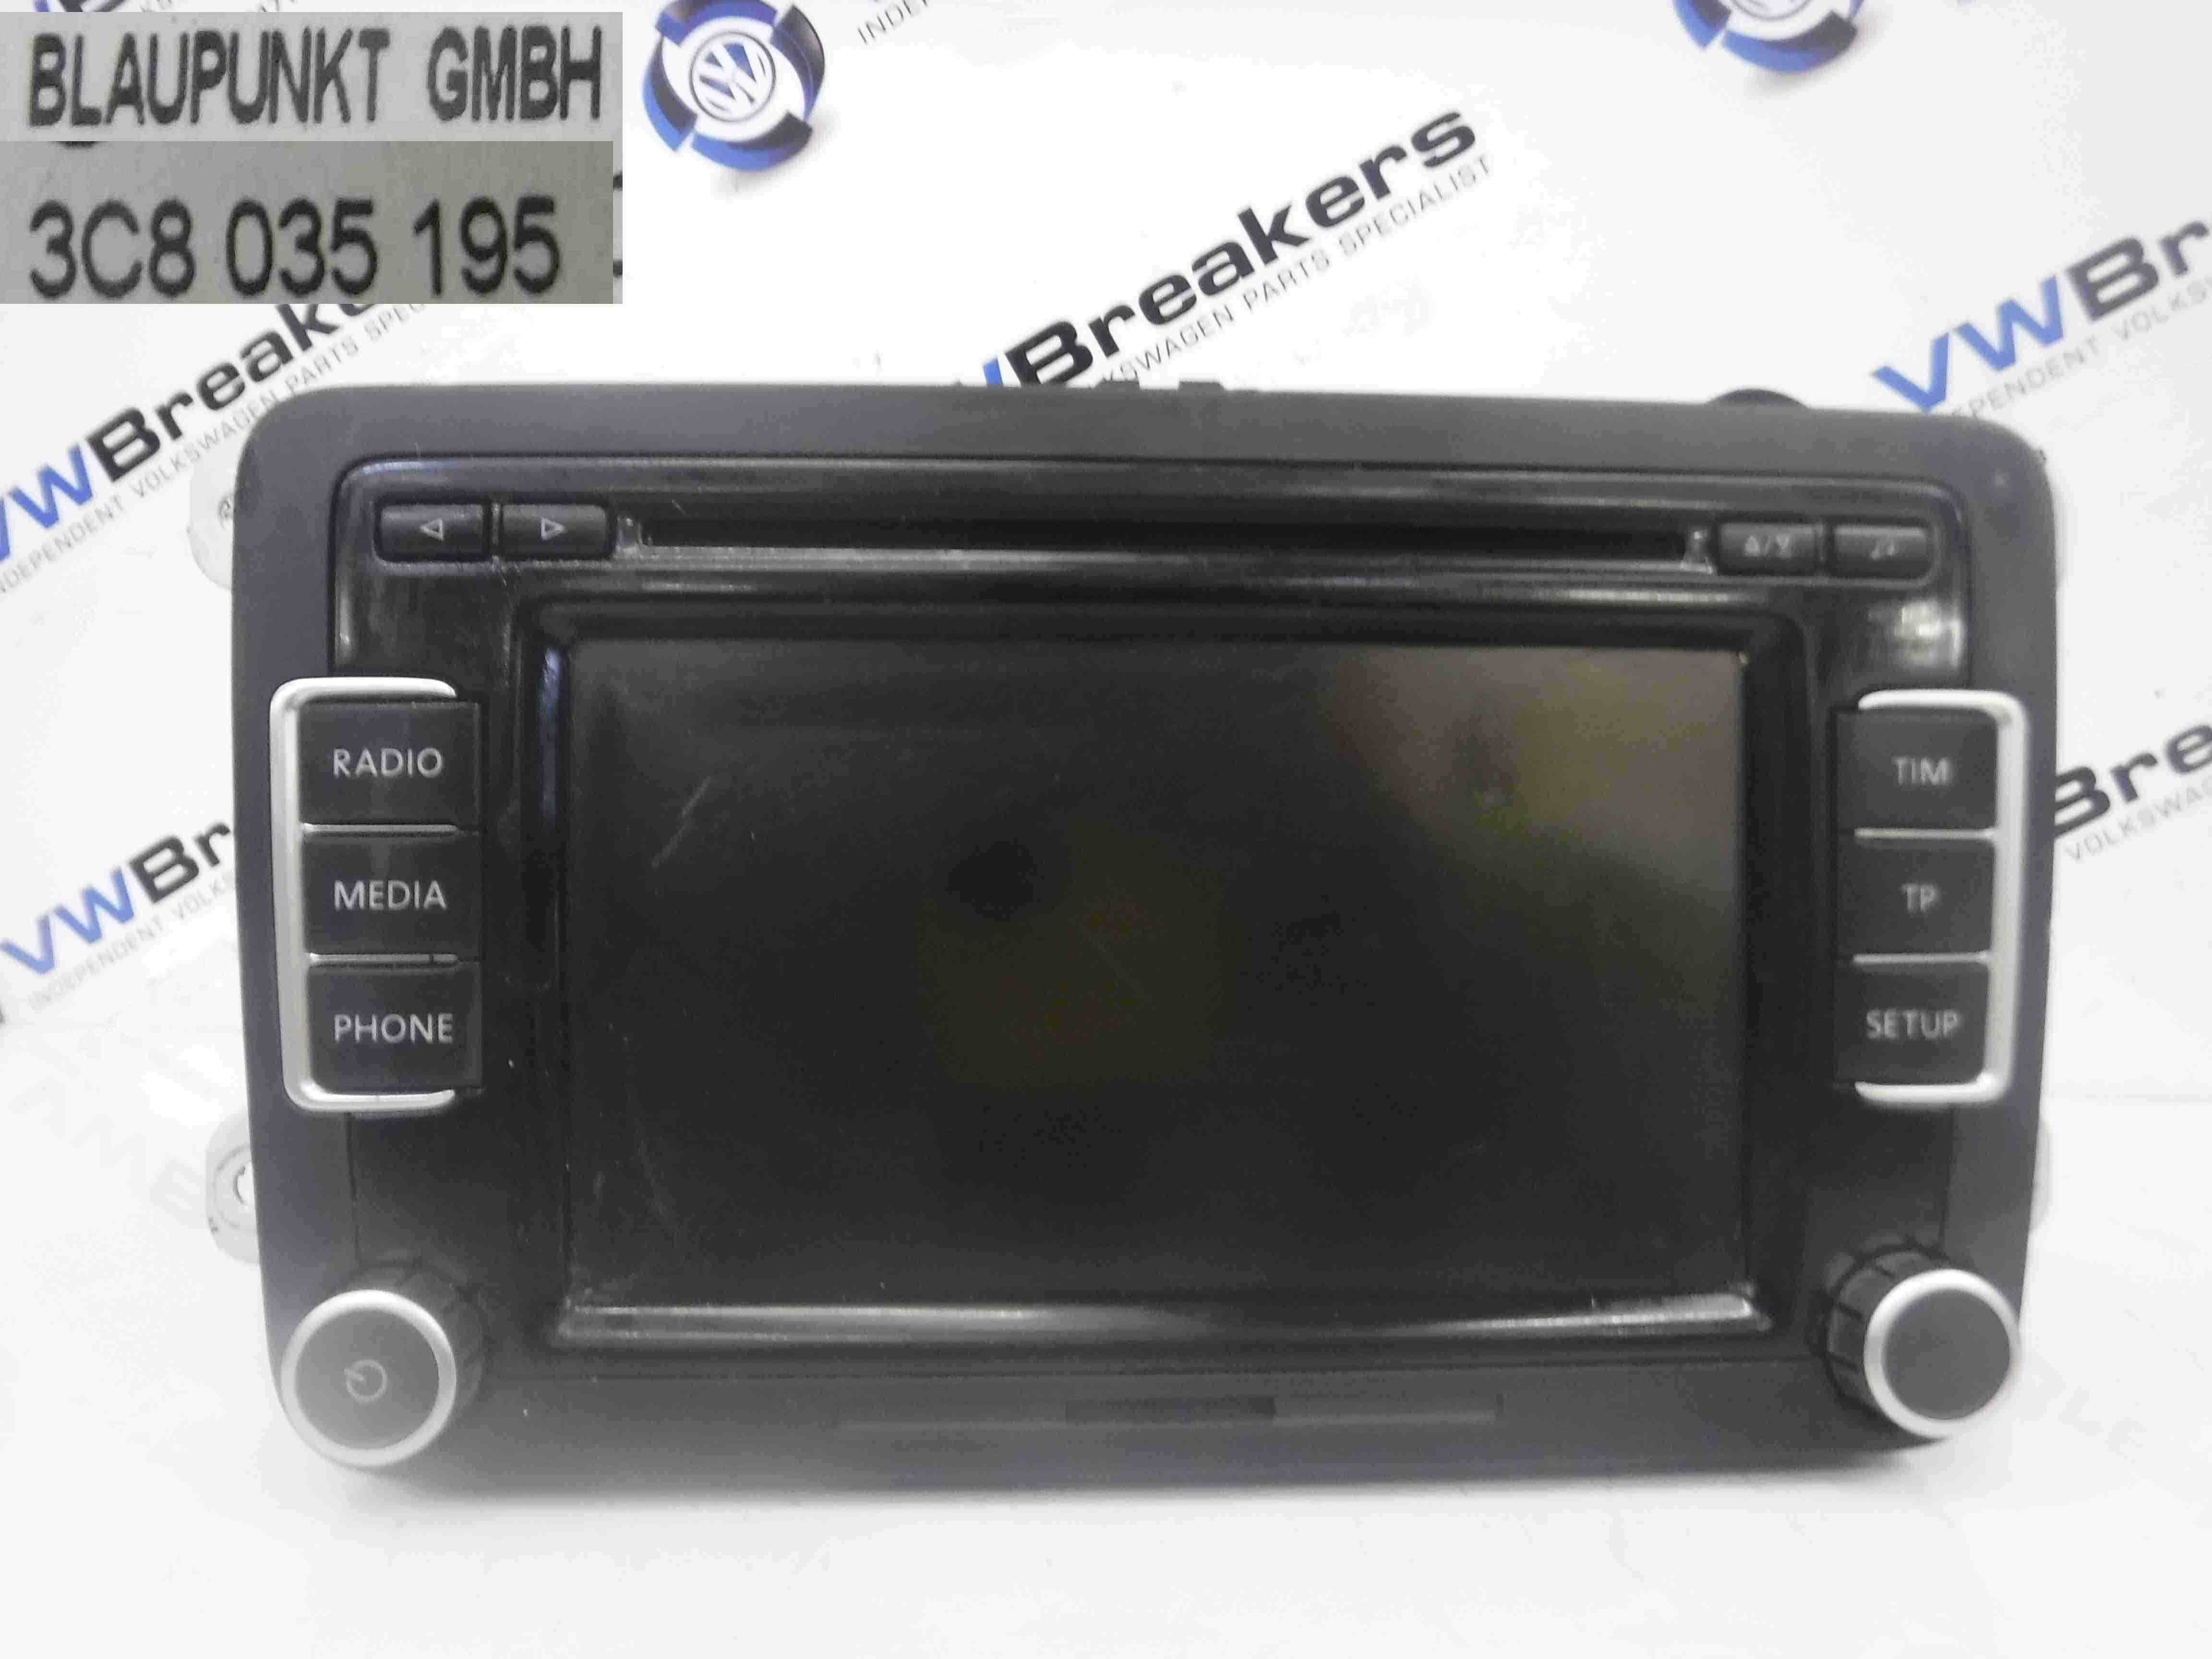 volkswagen scirocco 2008 2016 dab cd player radio. Black Bedroom Furniture Sets. Home Design Ideas